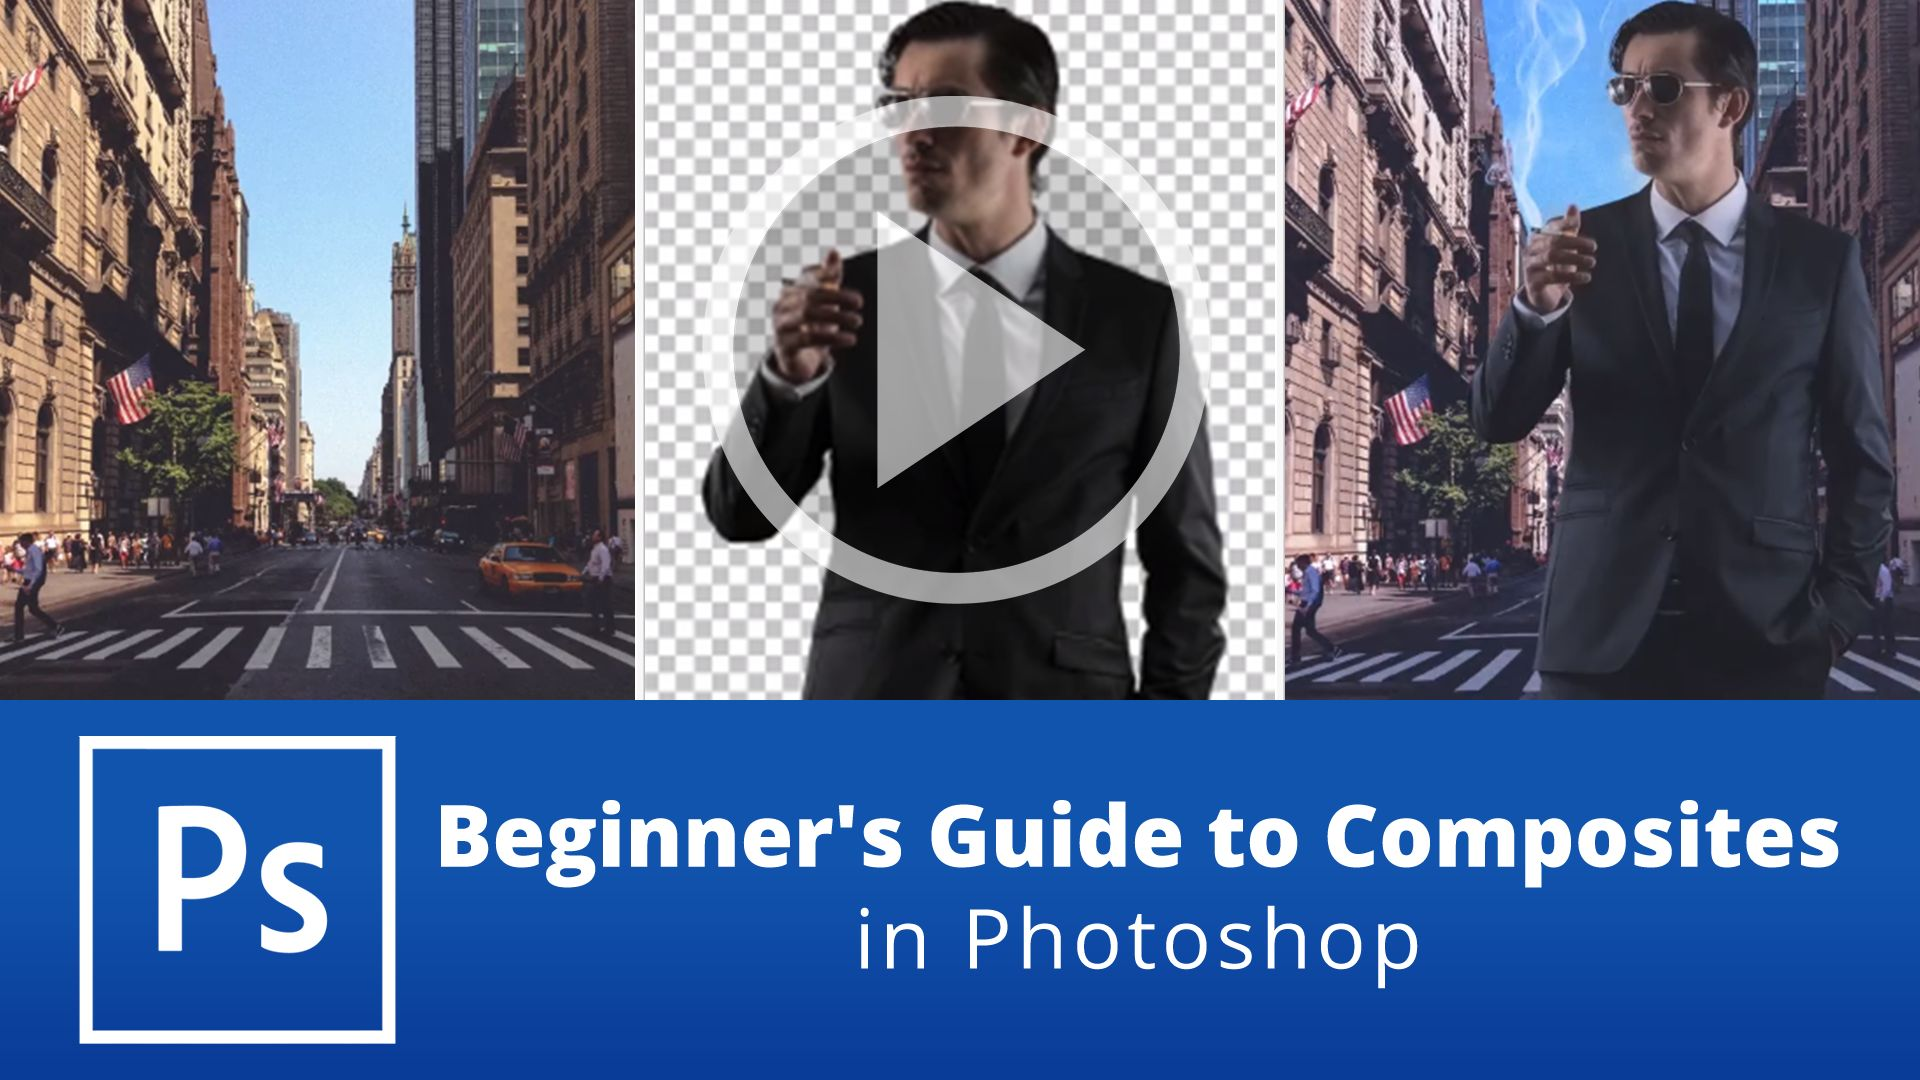 Beginner's Guide to Composites in Photoshop